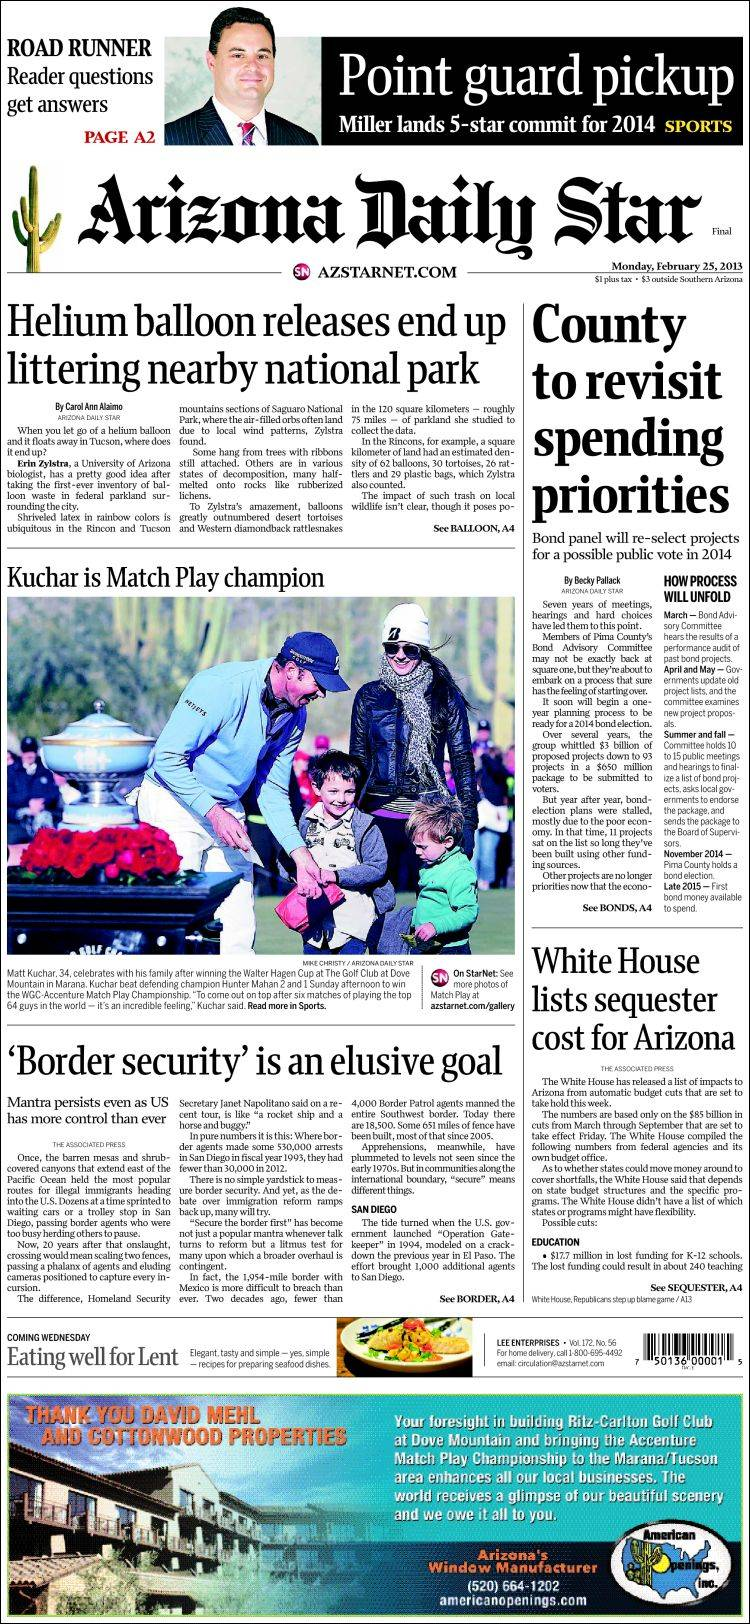 Arizona_daily_star-2013-02-25